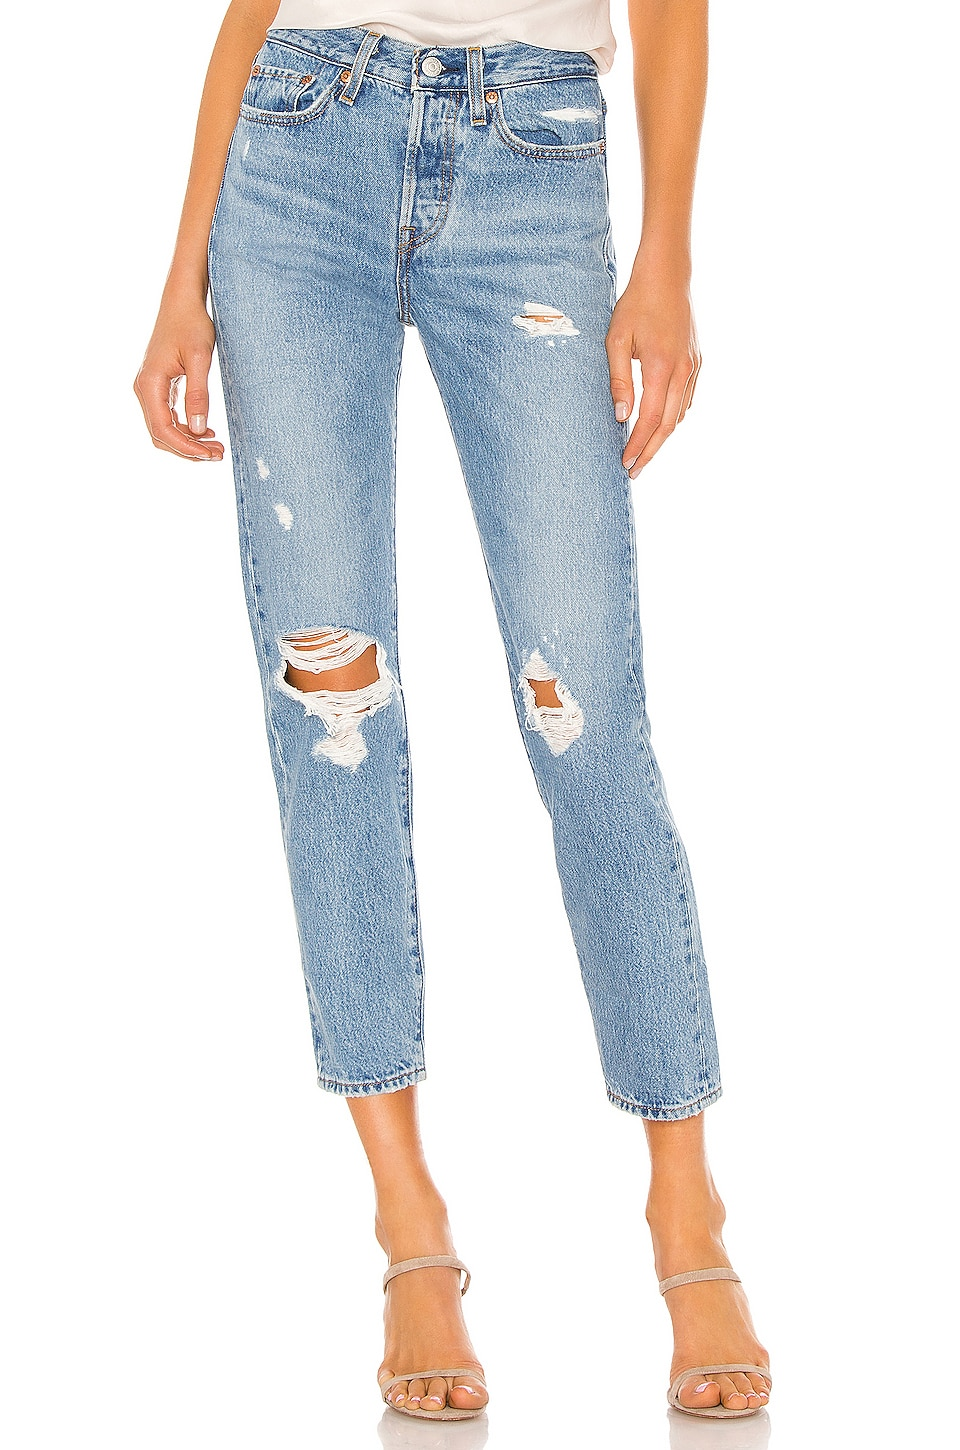 Wedgie Icon Fit             LEVI'S                                                                                                       CA$ 137.62 18